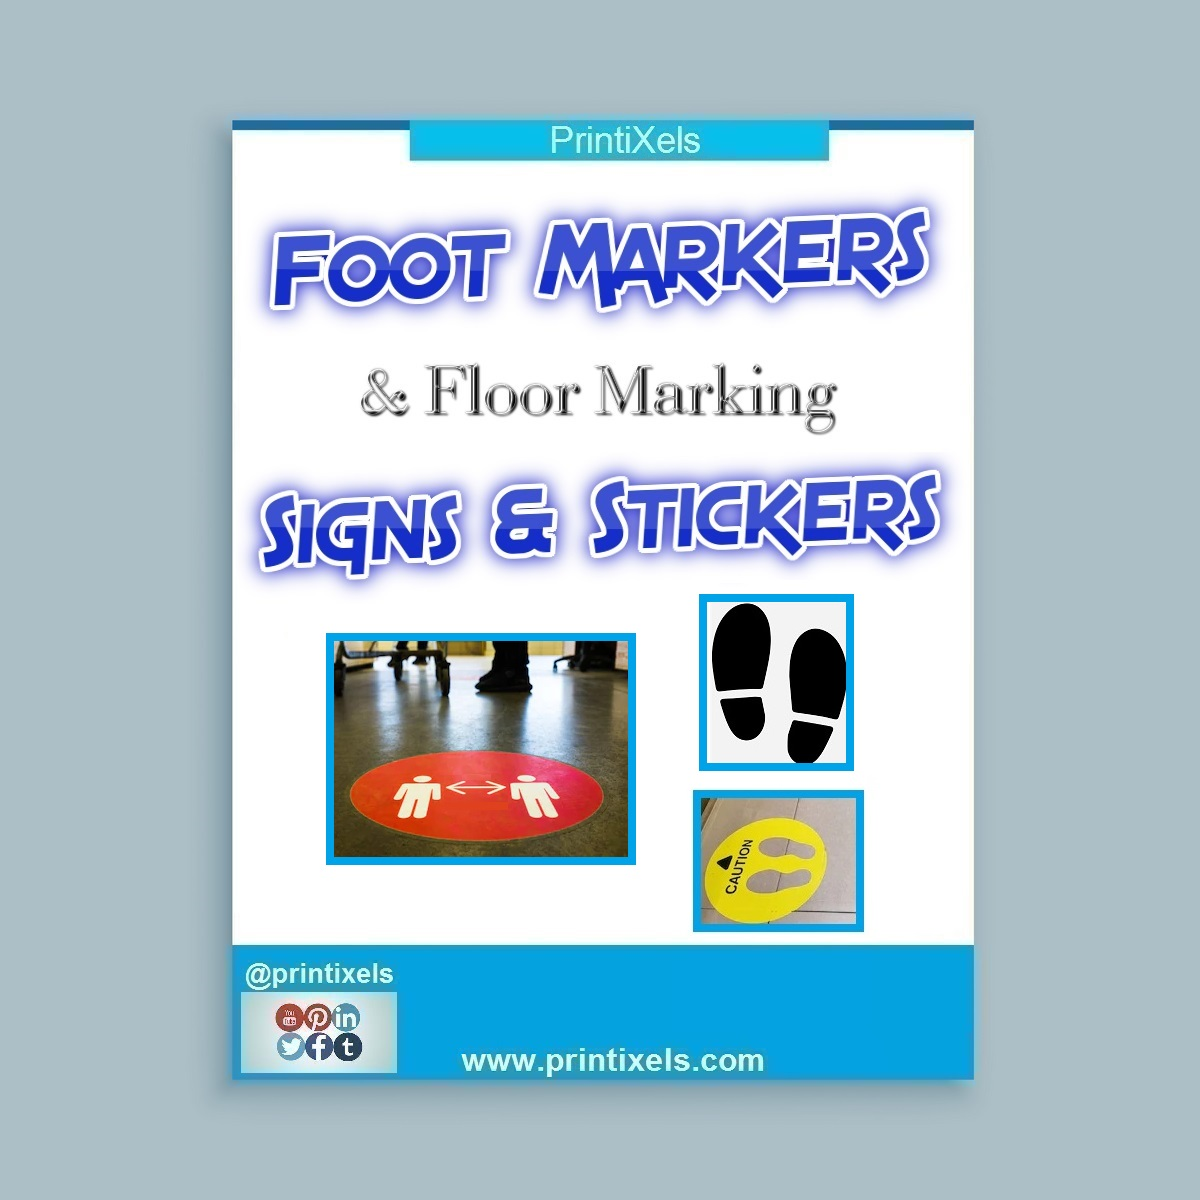 Foot Markers & Floor Marking Signs & Stickers Philippines